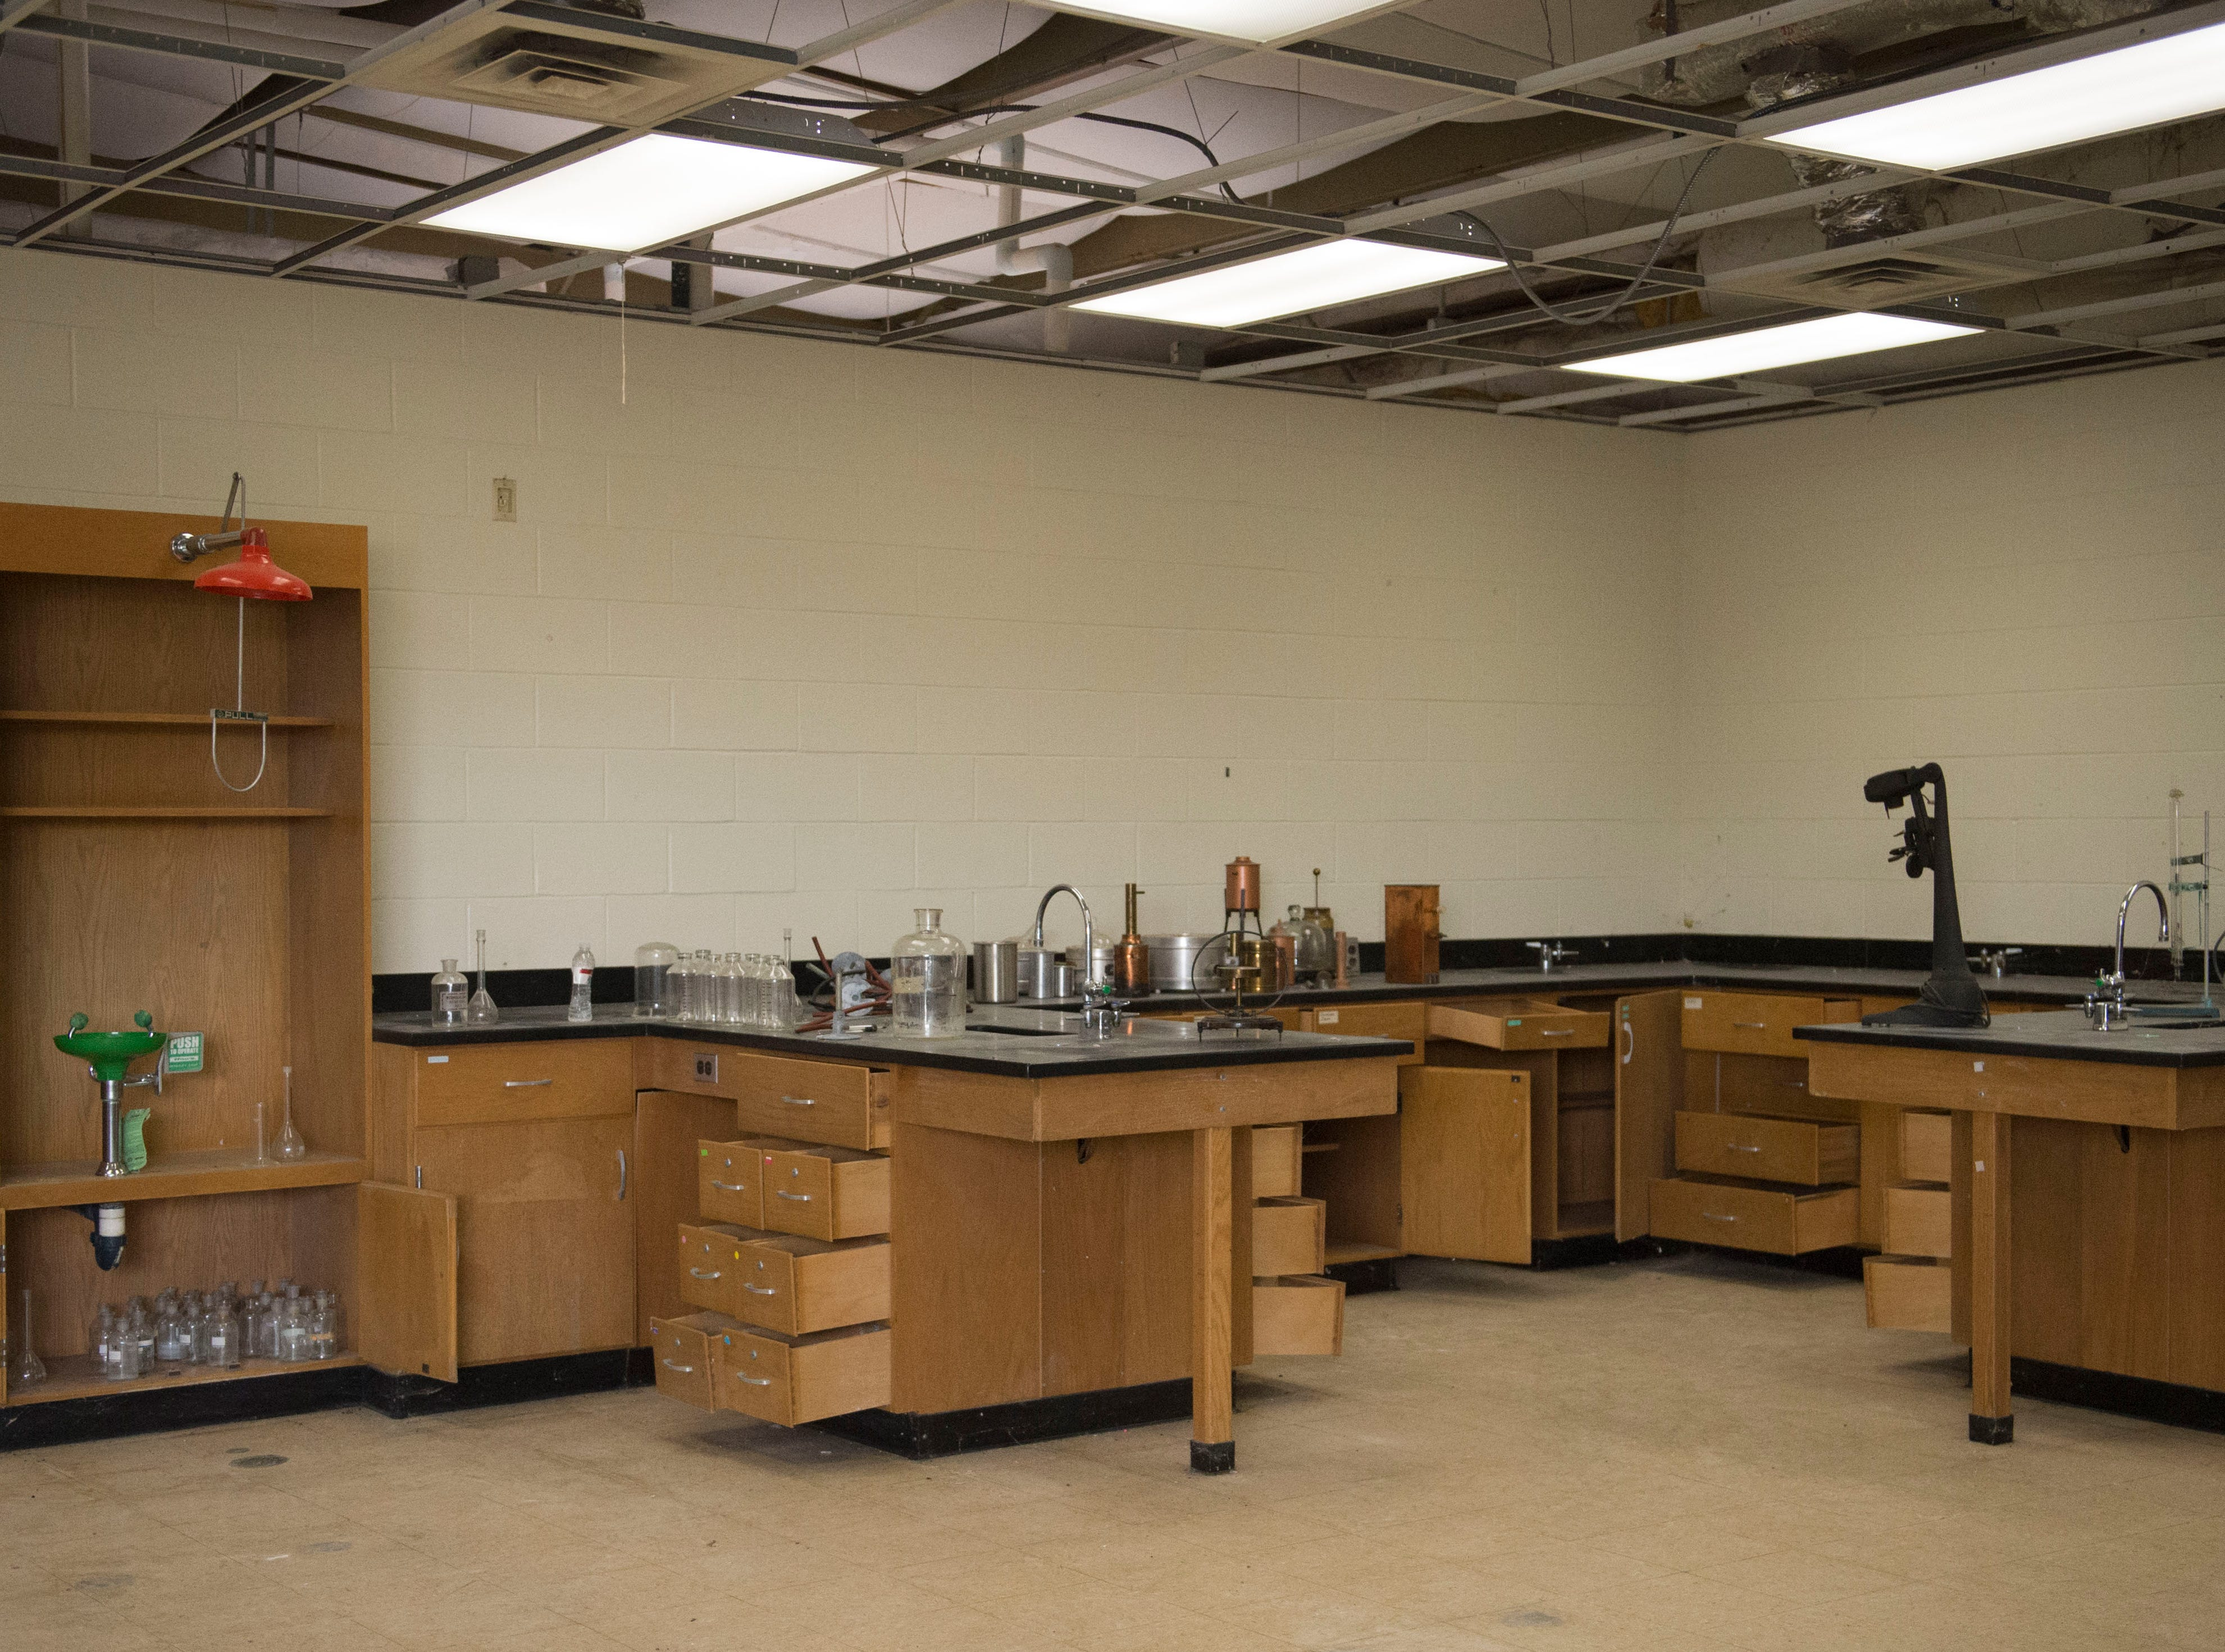 The science classroom inside New Harmony's empty school building which closed in 2012 due to small enrollment. The Town Council voted 5-0 Tuesday, March 19, 2019 to sell the building to Erik Arneberg for $125,000.